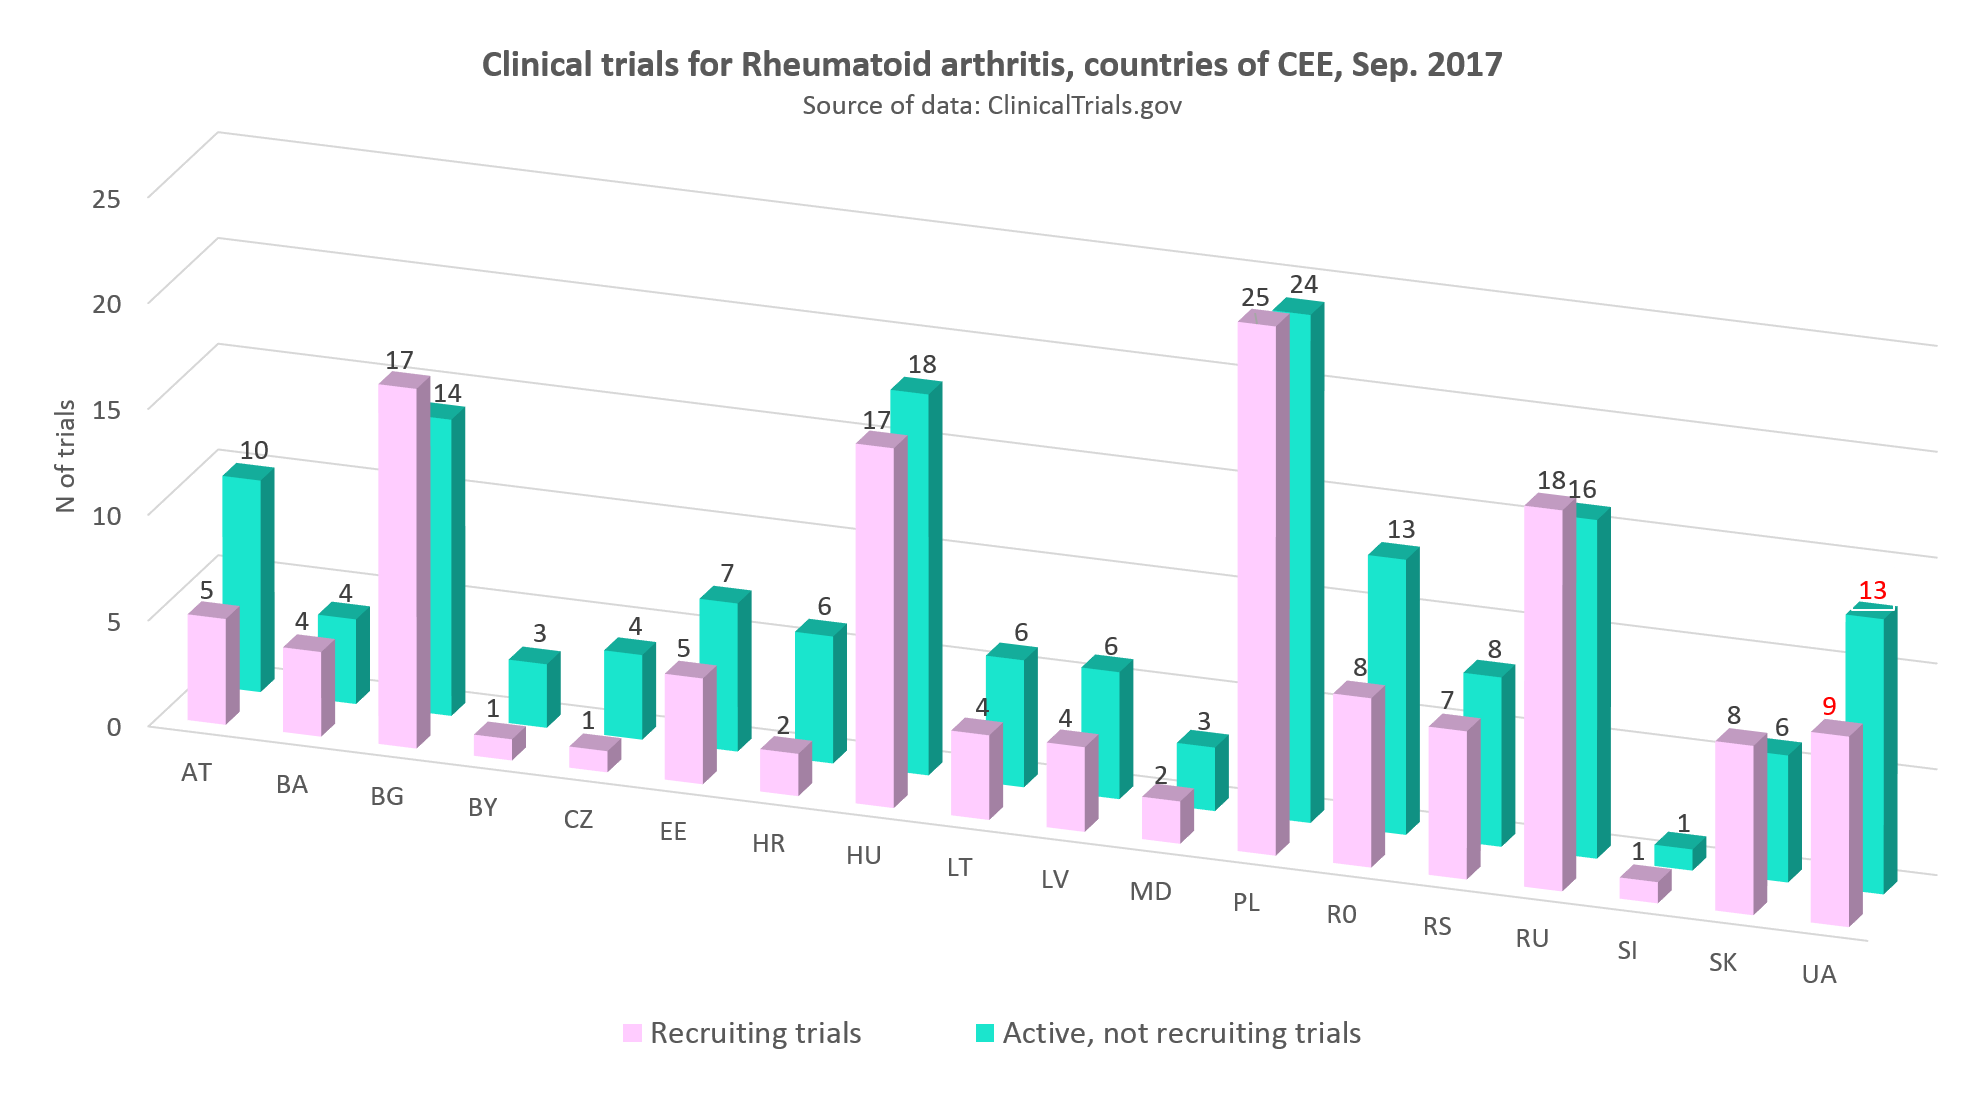 Clinical trials for rheumatoid arthritis in countries of CEE, September 2017